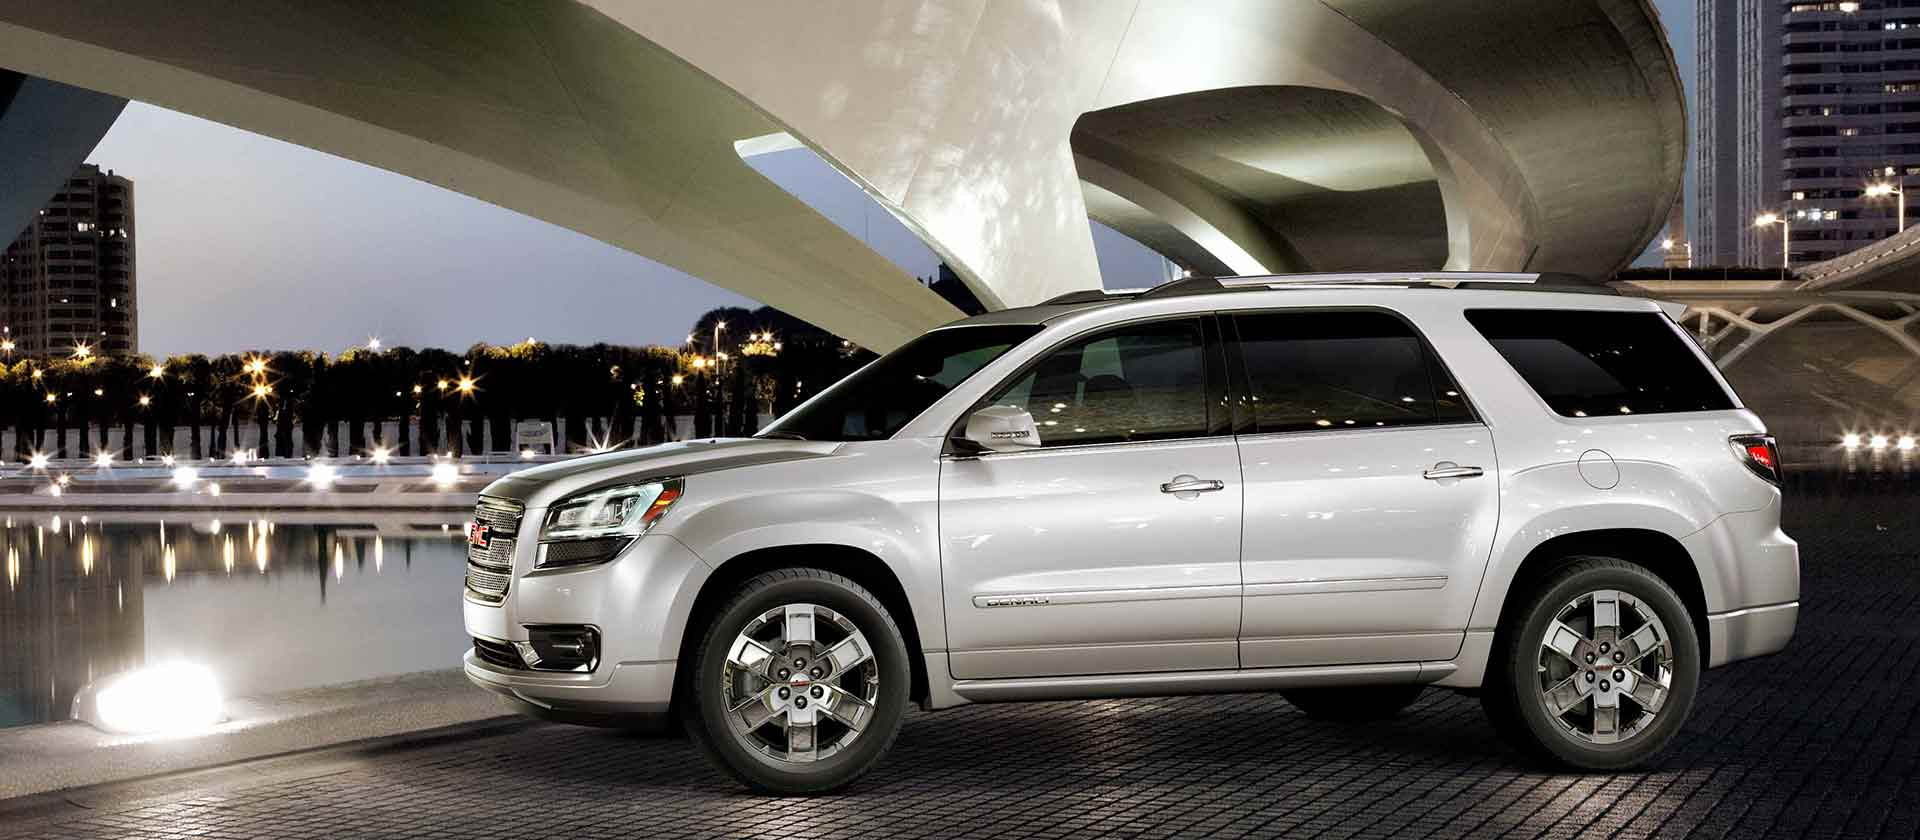 2016 Acadia Denali   Safety Features   Cardinale GMC If you are looking for the latest safety features  the GMC Acadia Denali  has it all as it seamlessly blends the most advanced safety attributes with  a